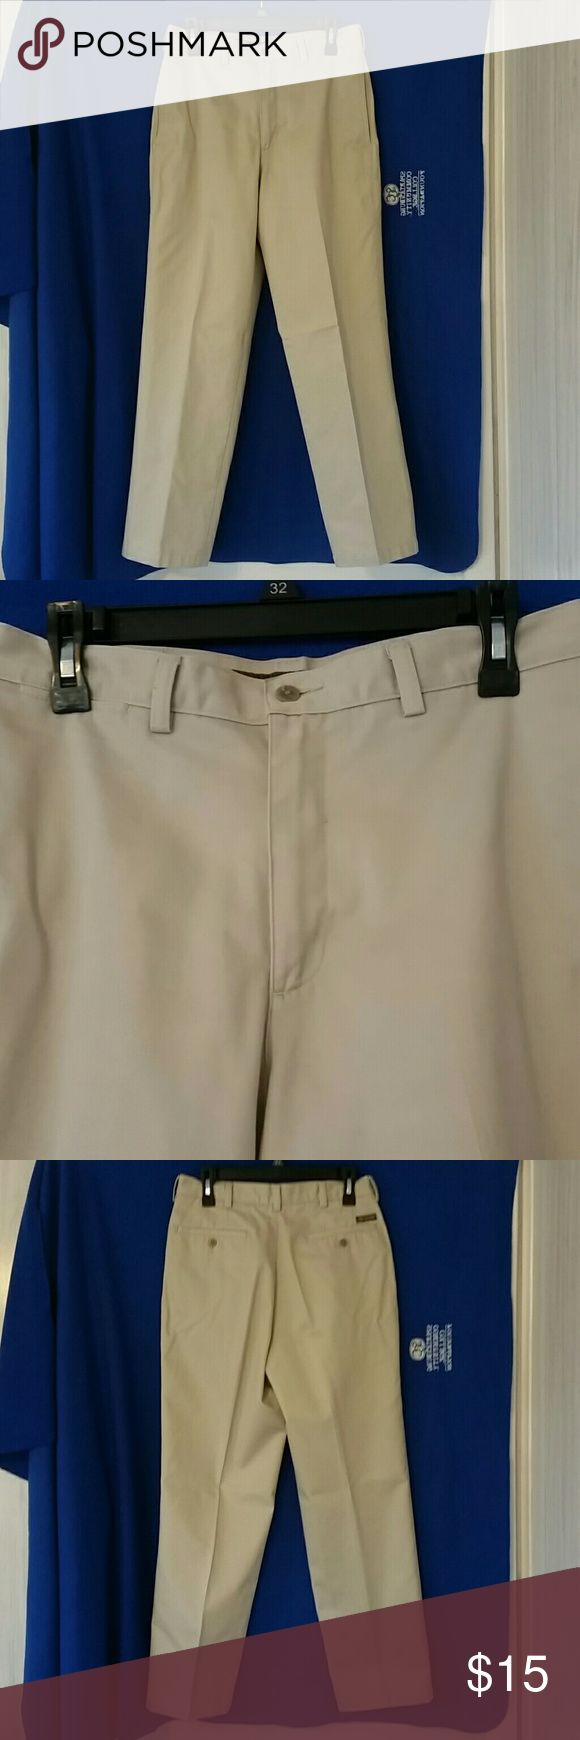 Mens Khakis sz 30 x 32 Savane Gently worn but one mark at the bottom of the left leg as shown in the 7th picture. Make an offer! Comes from a smoke/pet free home Savane Pants Chinos & Khakis